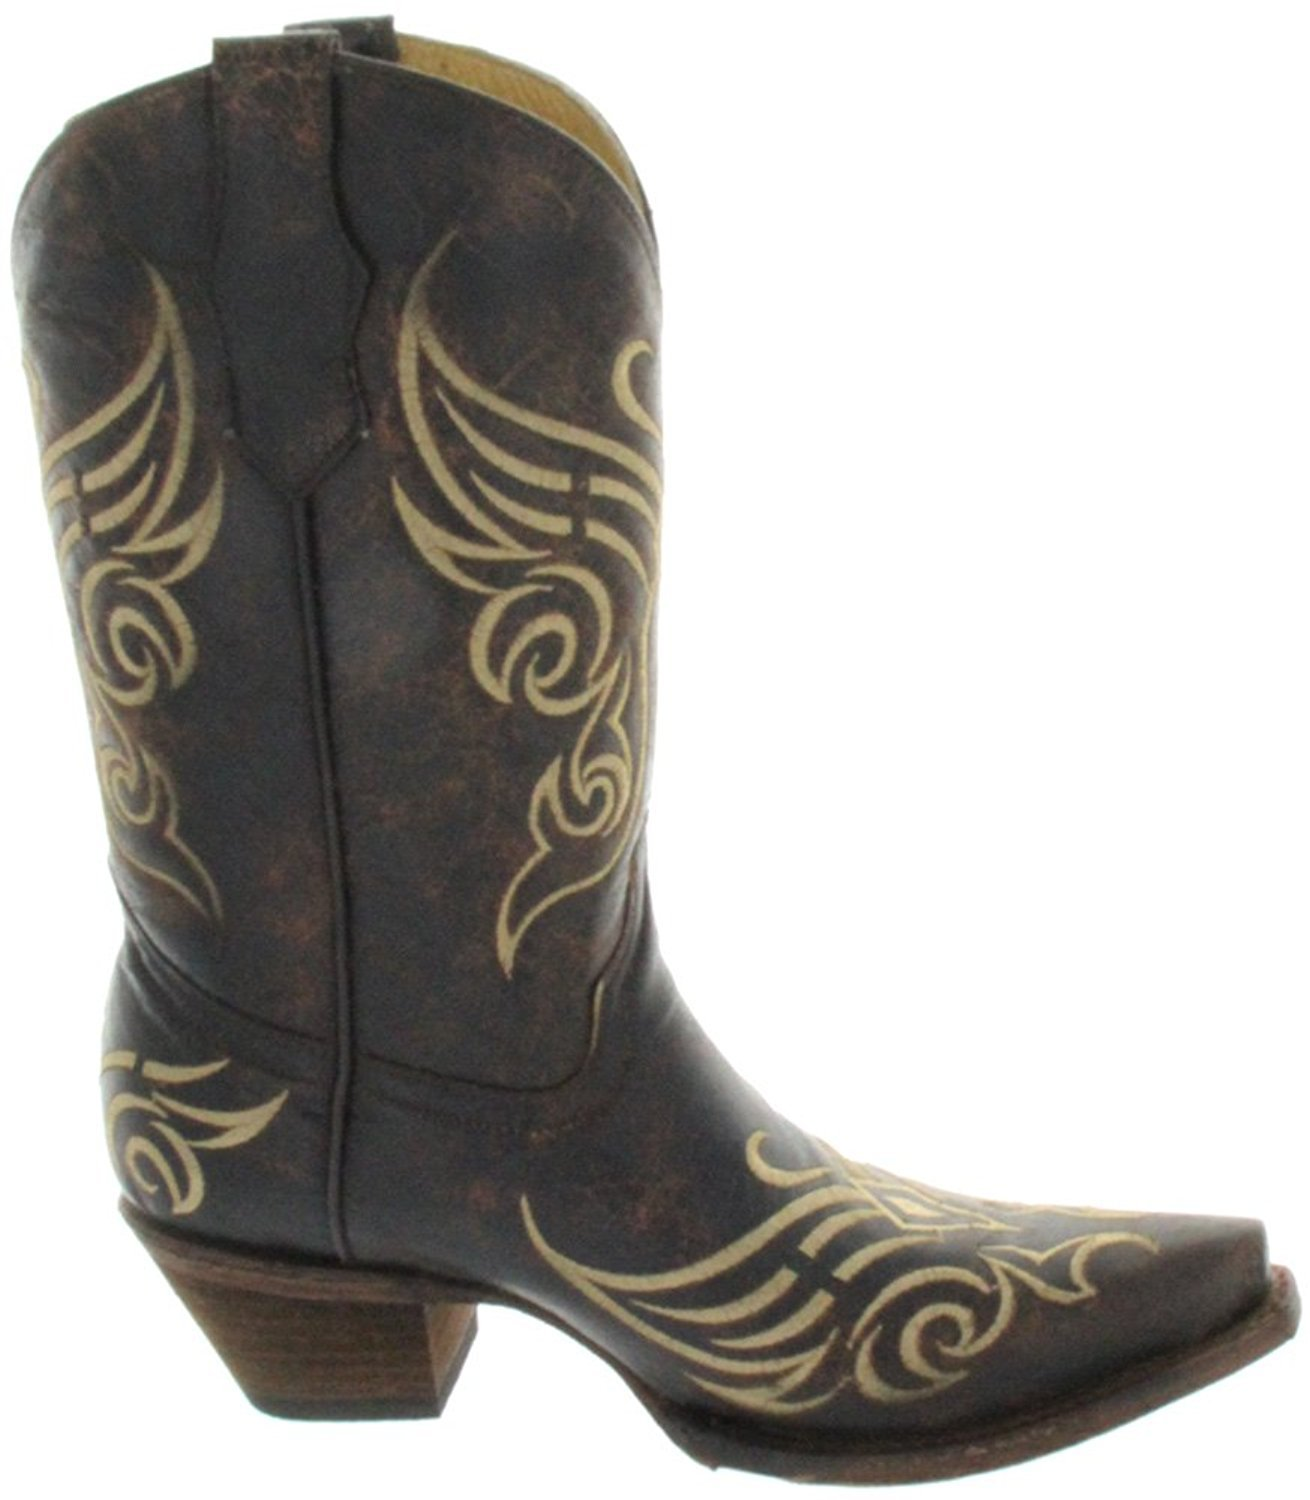 CORRAL Women's L5004 Butterfly Embroidery Brown Western Boots 12 M